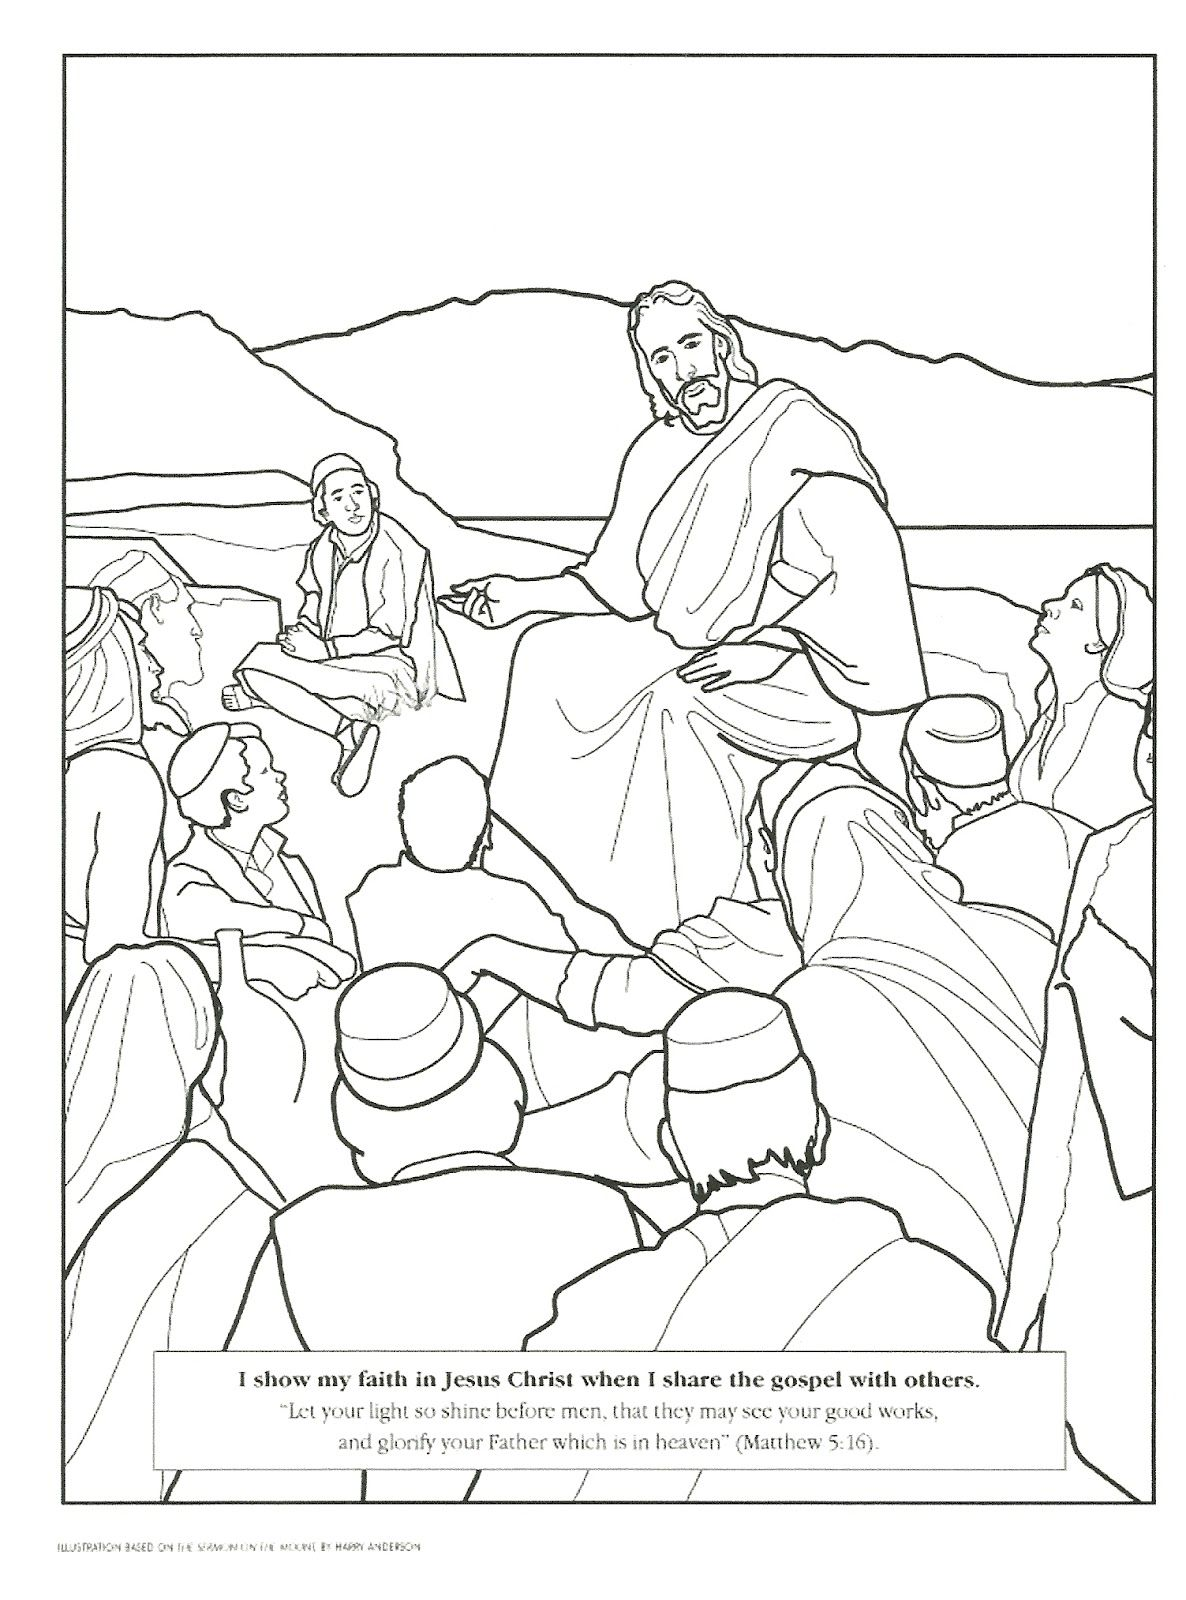 Primary 2 Manual Lesson 22 Blessed Are the Peacemakers Journal Page ...